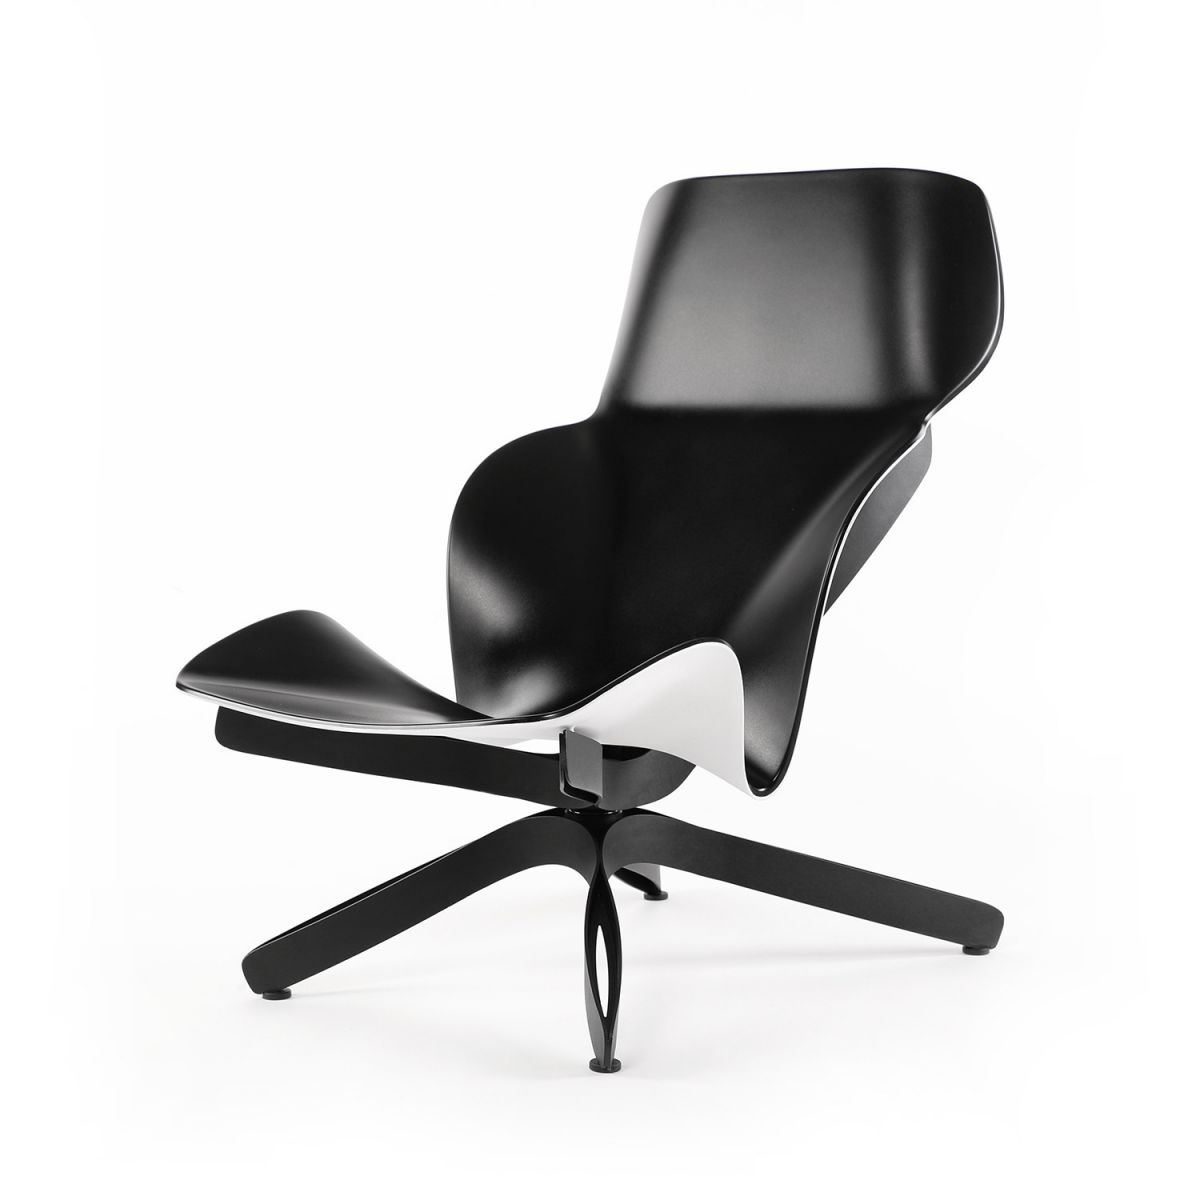 Bureau Studio Odesd2 Design Bureau Studio Dorogaya Om Lounge Chair Design